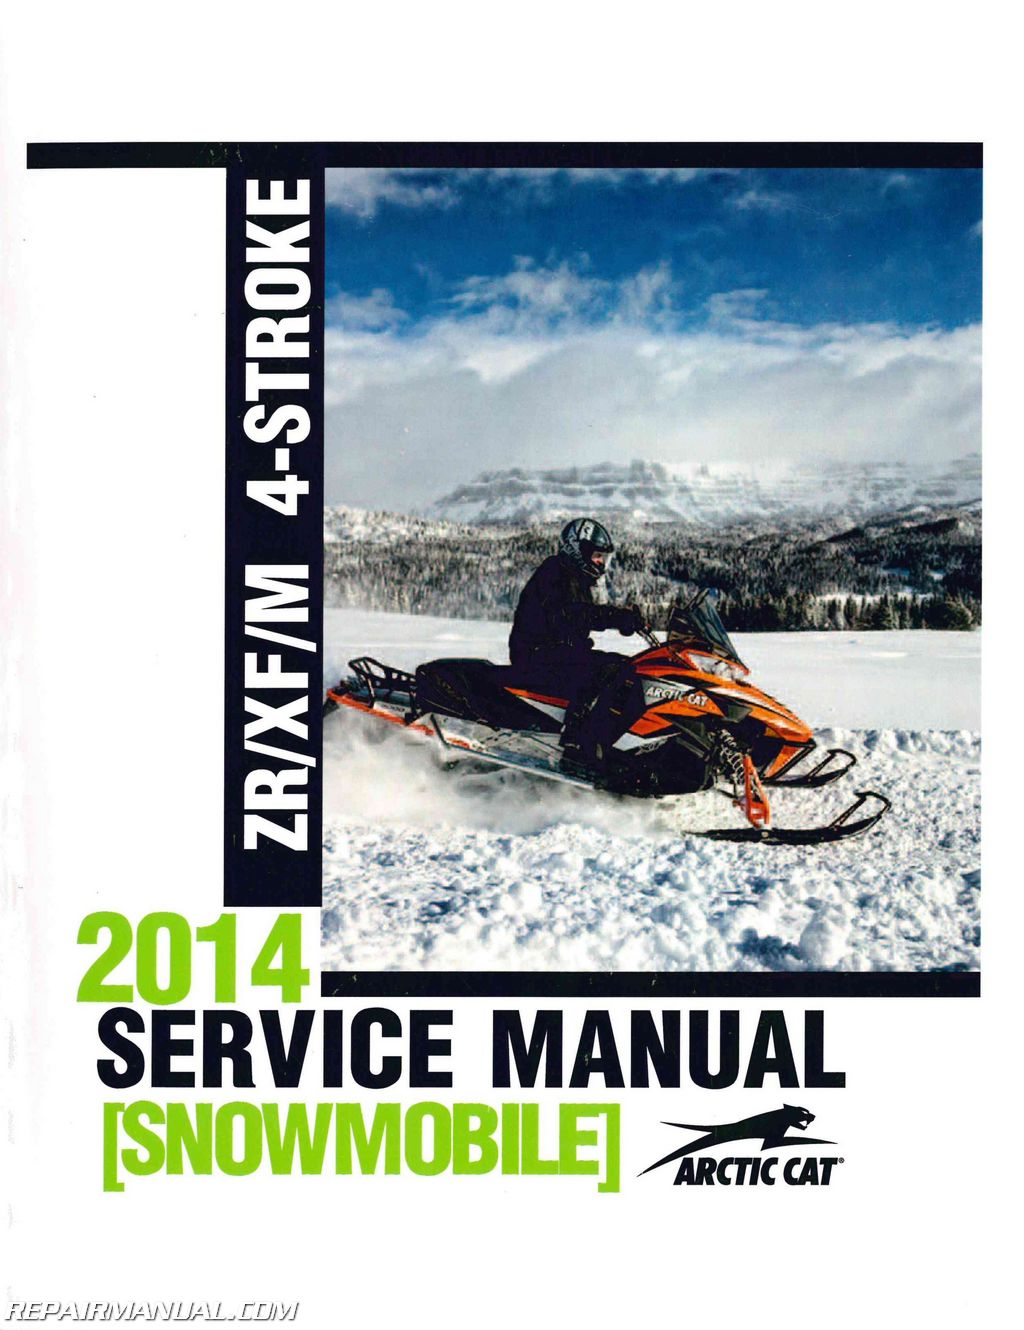 hight resolution of arctic cat snowmobile 4 stroke wiring diagrams example electrical snowmobile parts diagram 2014 arctic cat zr